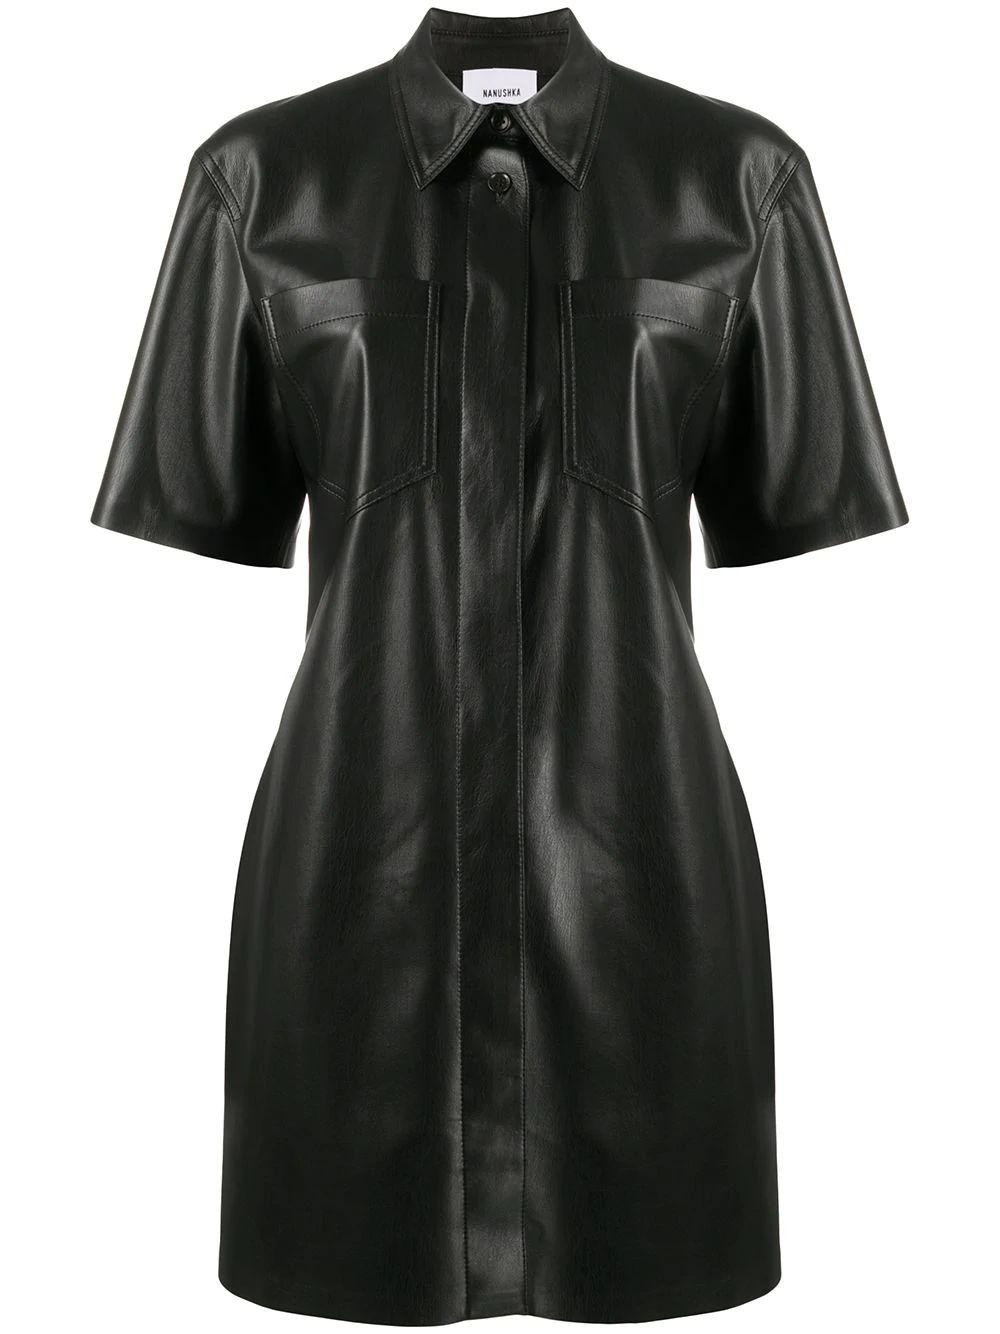 Berto Faux Leather Shirt Dress Item # NW20PFDR00399